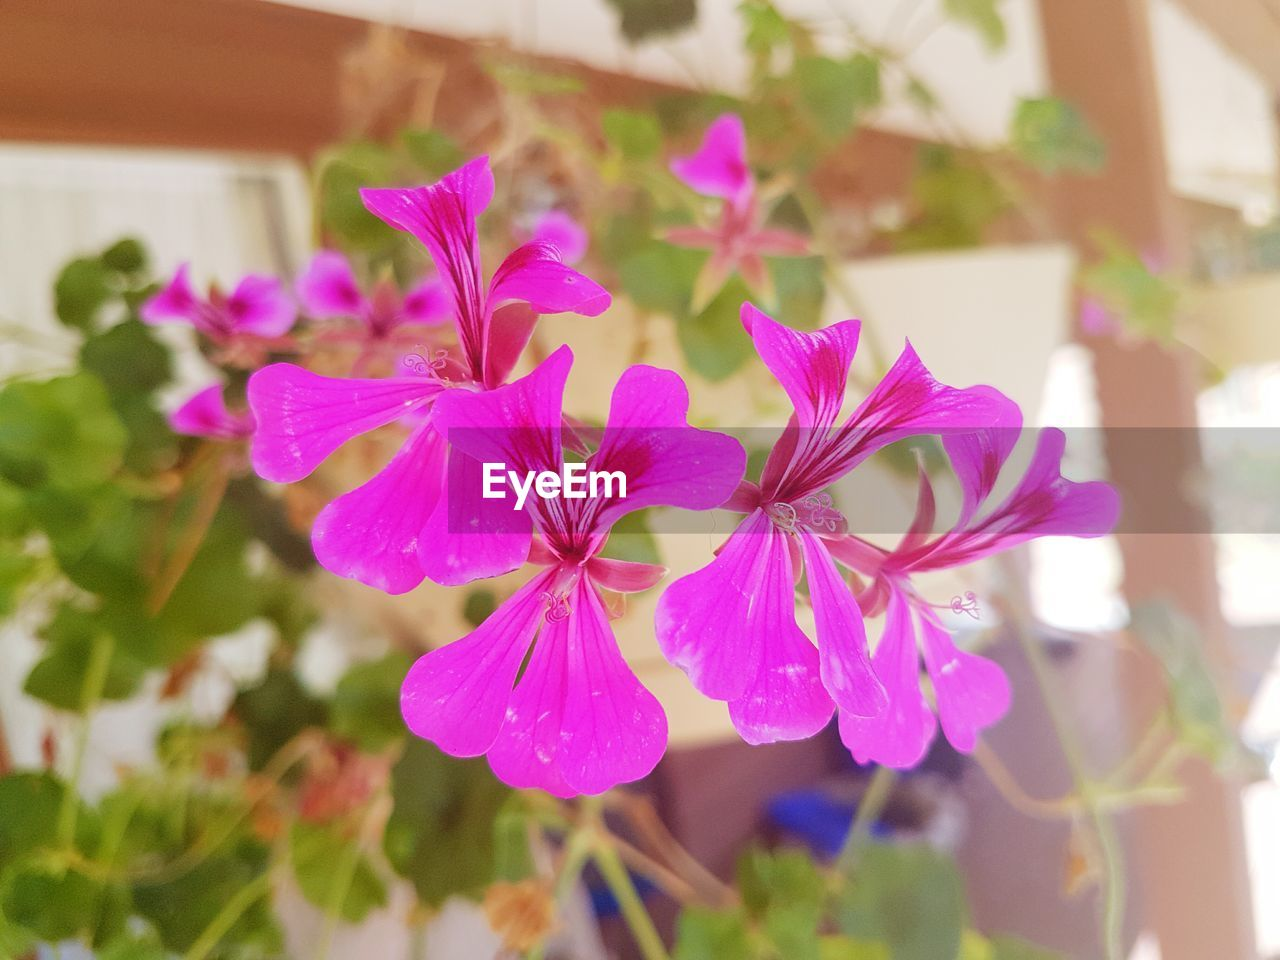 flower, plant, fragility, focus on foreground, beauty in nature, growth, petal, day, nature, close-up, outdoors, no people, leaf, flower head, freshness, blooming, periwinkle